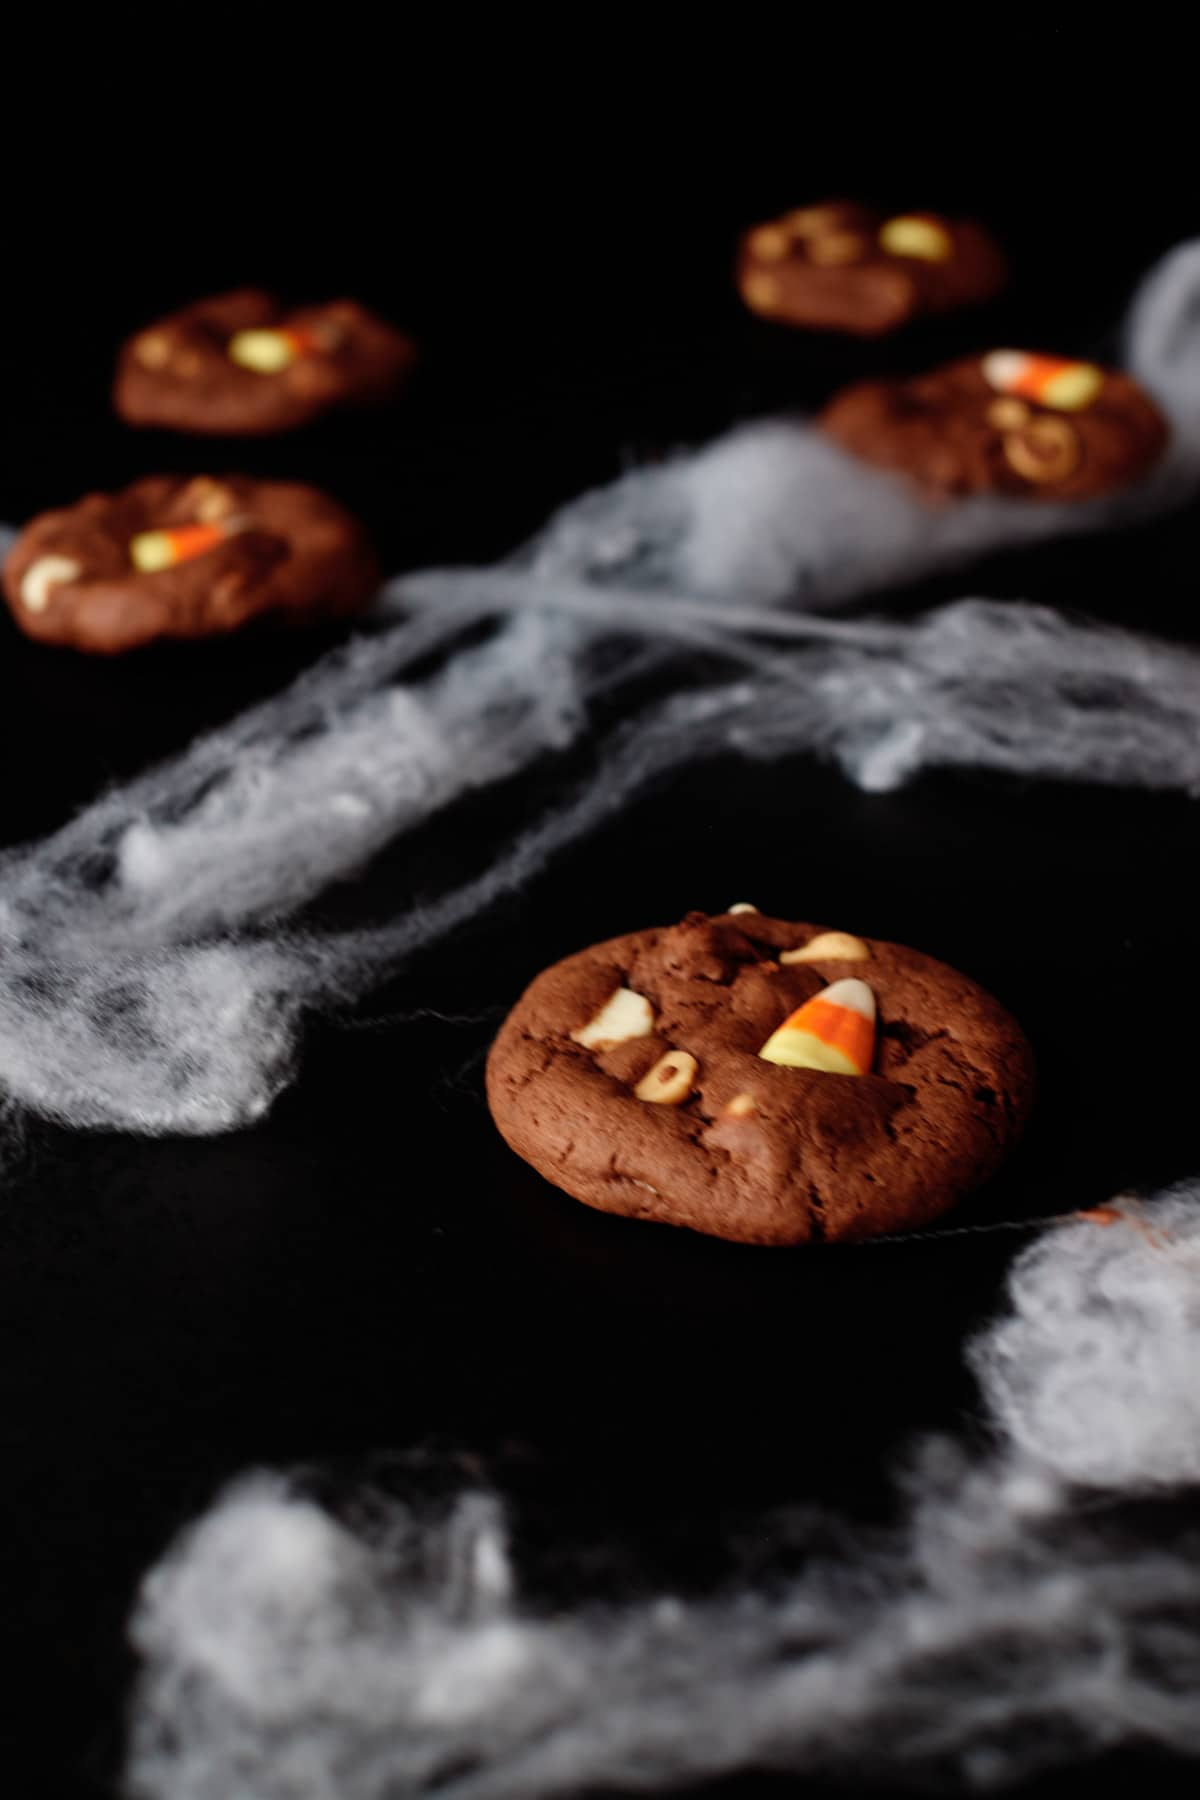 candy corn cookies served on a black mat with fake spider web decor